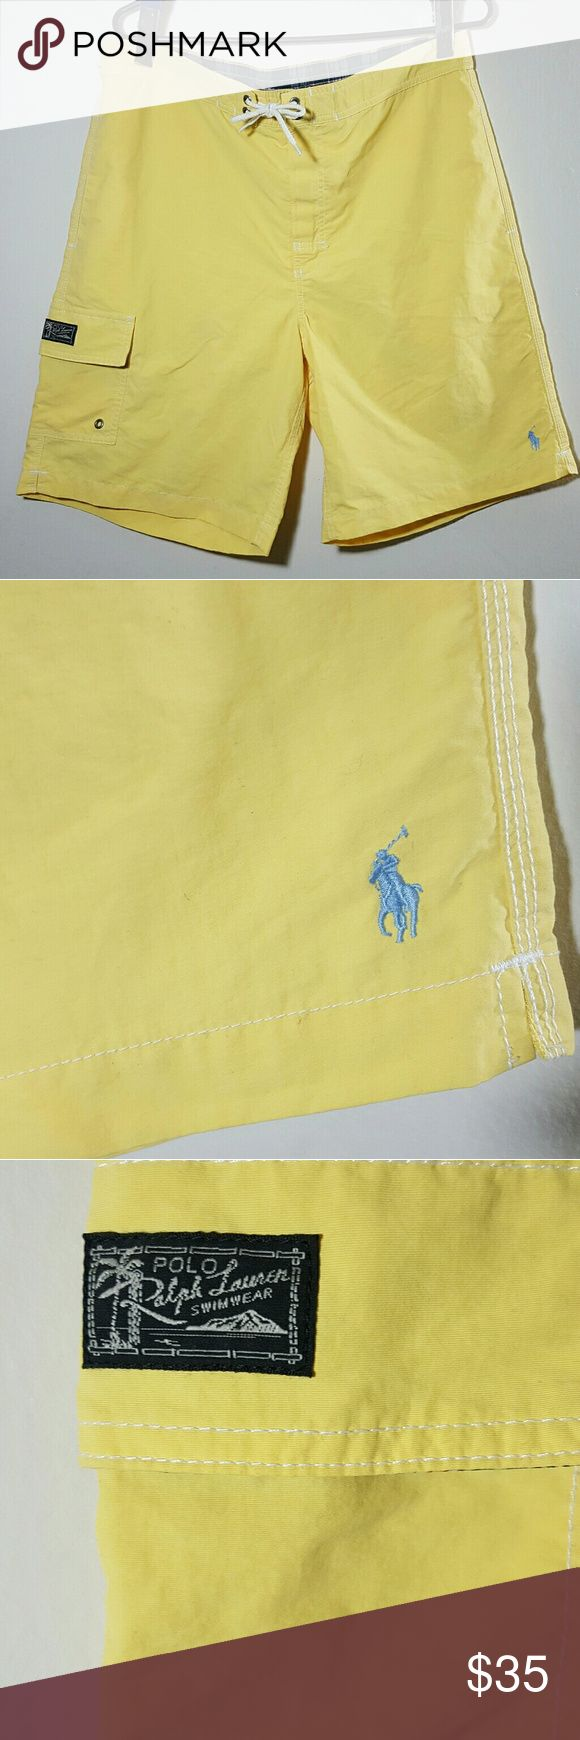 NWOT Polo Ralph Lauren Swim Shorts Swimming Trunk Brand new without tags Mens Swim Shorts by Polo Ralph Lauren Classic swimming trunks SIZE M Color name is summer yellow Elastic waist at back Velcro fly with drawstring closure at front Onseam side front pockets Coin pocket on inside Pocket on right with Polo logo patch on flap Inside mesh lining Shell is 100% Nylon Lining is 100% Polyester Machine washable Ralph Lauren Swim Swim Trunks